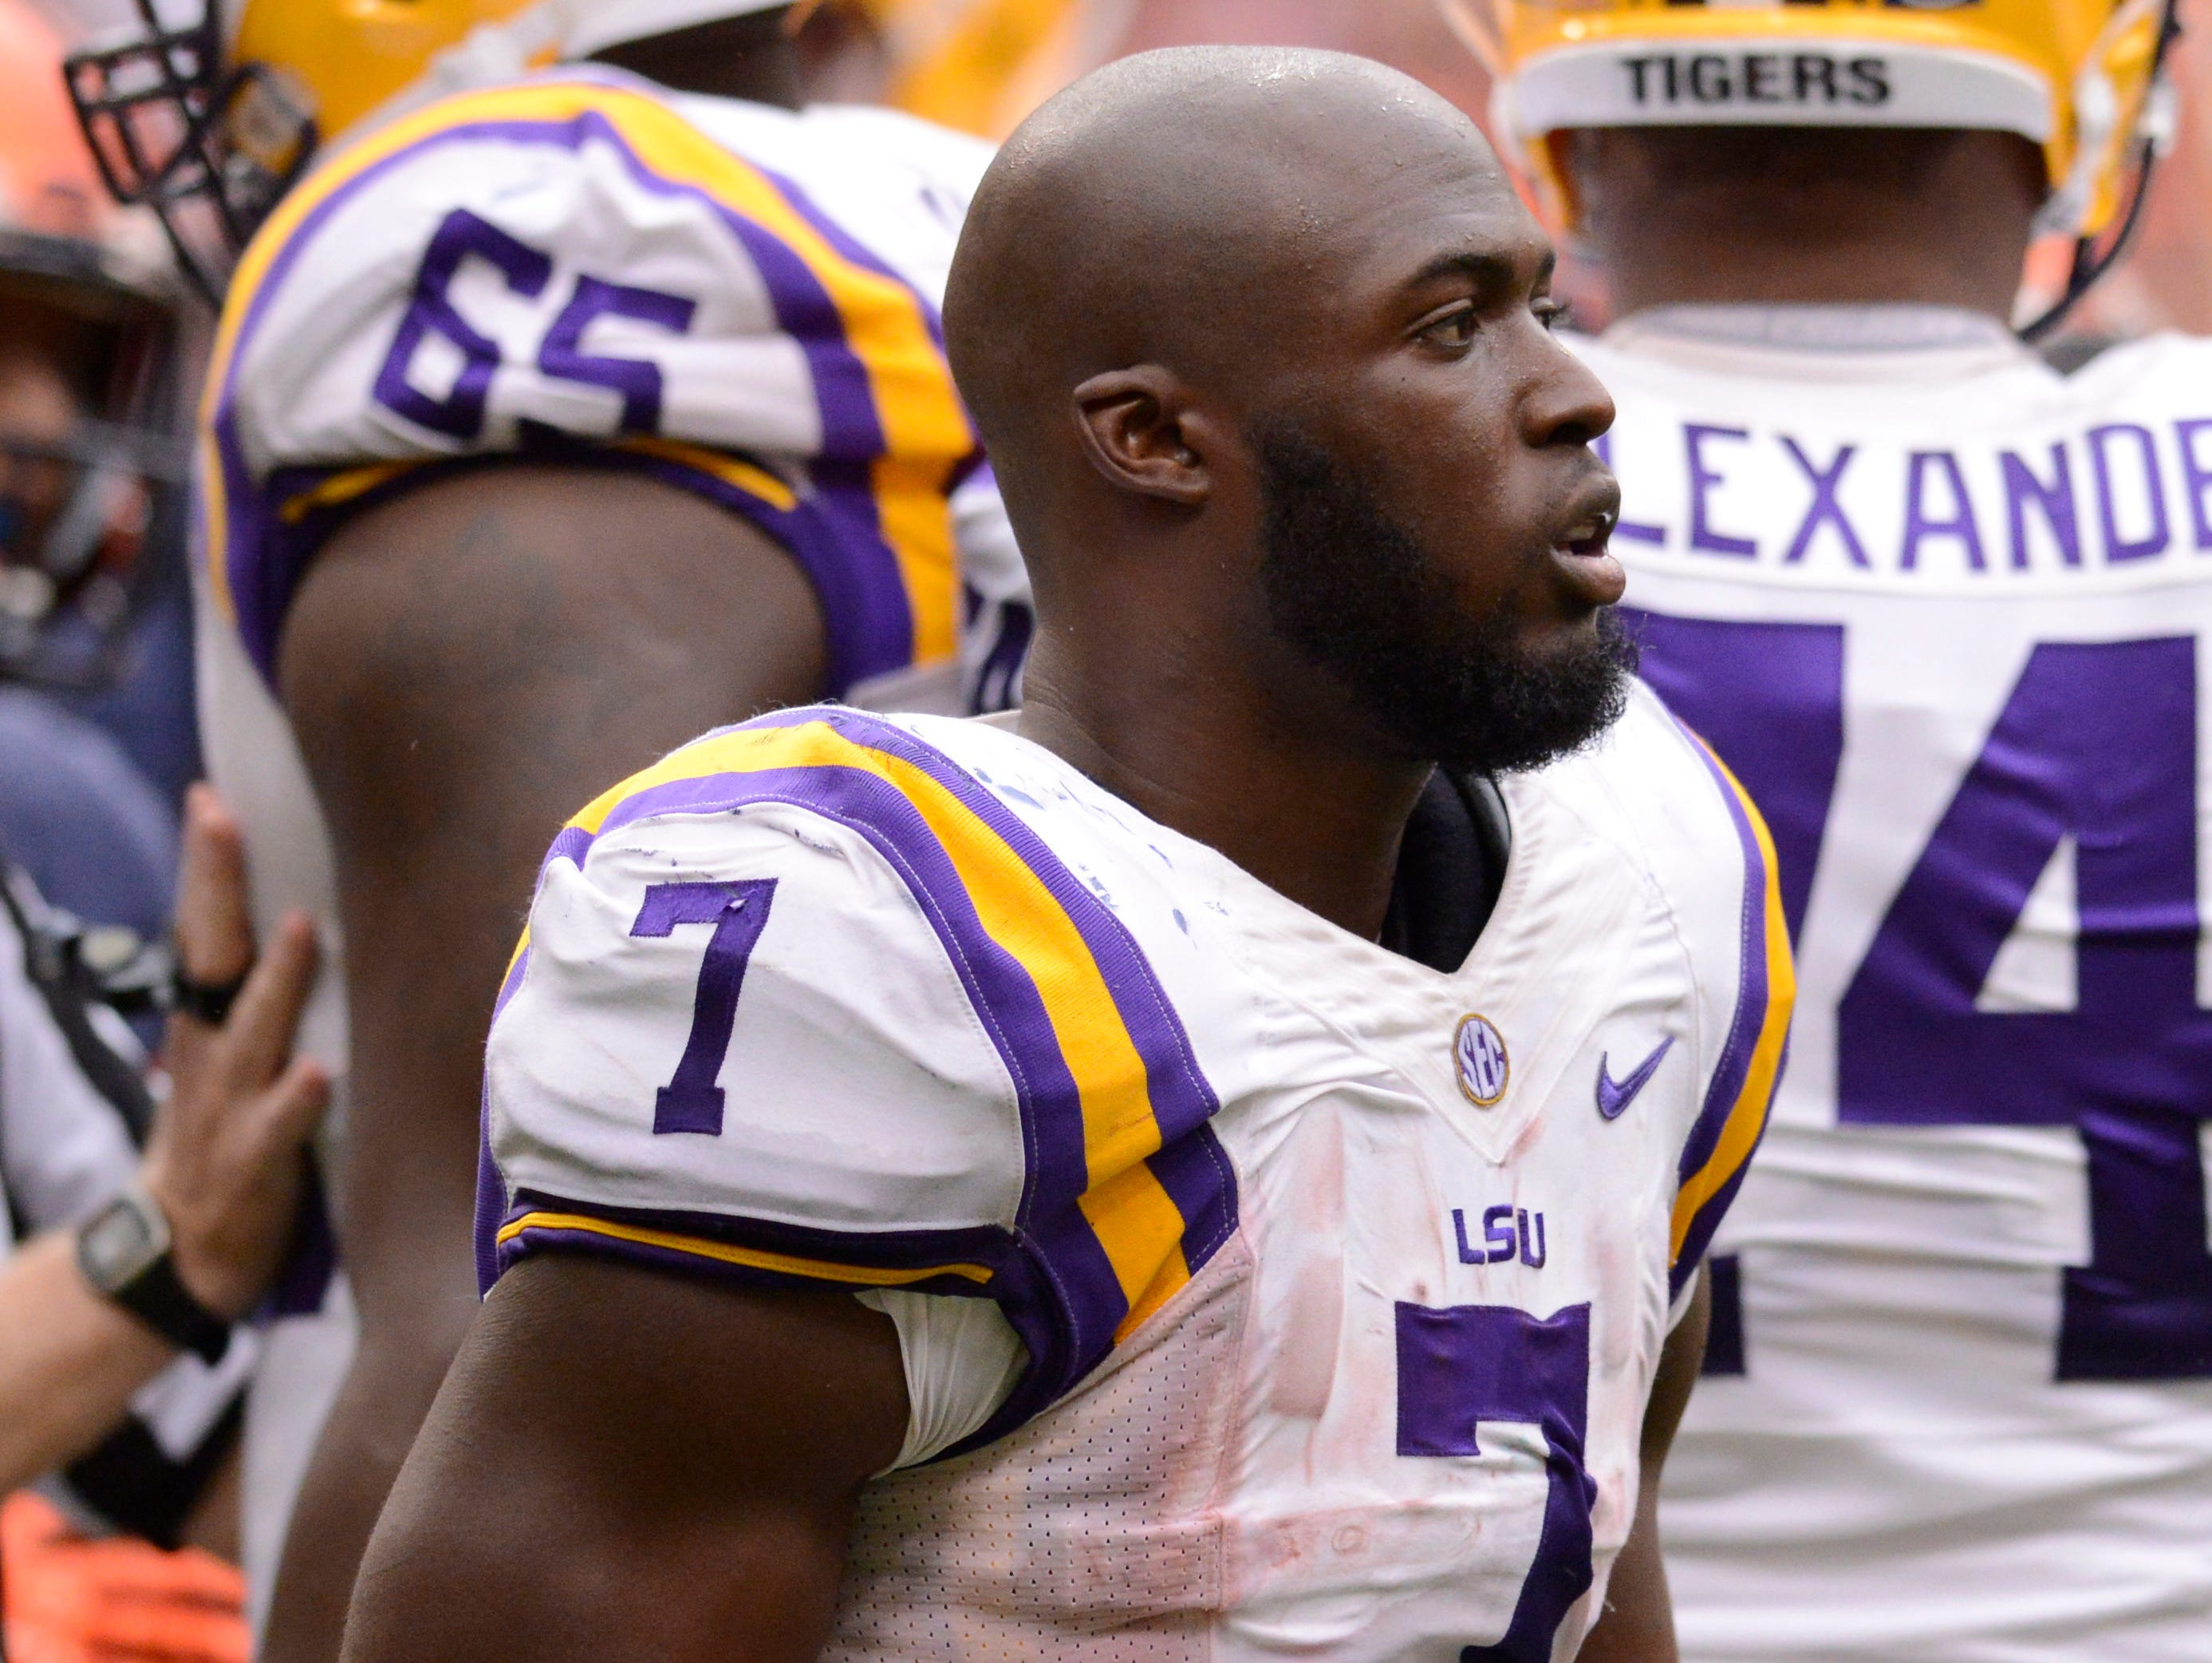 LSU Tigers running back Leonard Fournette (7) gathers his helmet after losing it on a play in the fourth quarter of a game against the Syracuse Orange at the Carrier Dome. LSU won the game 34-24.